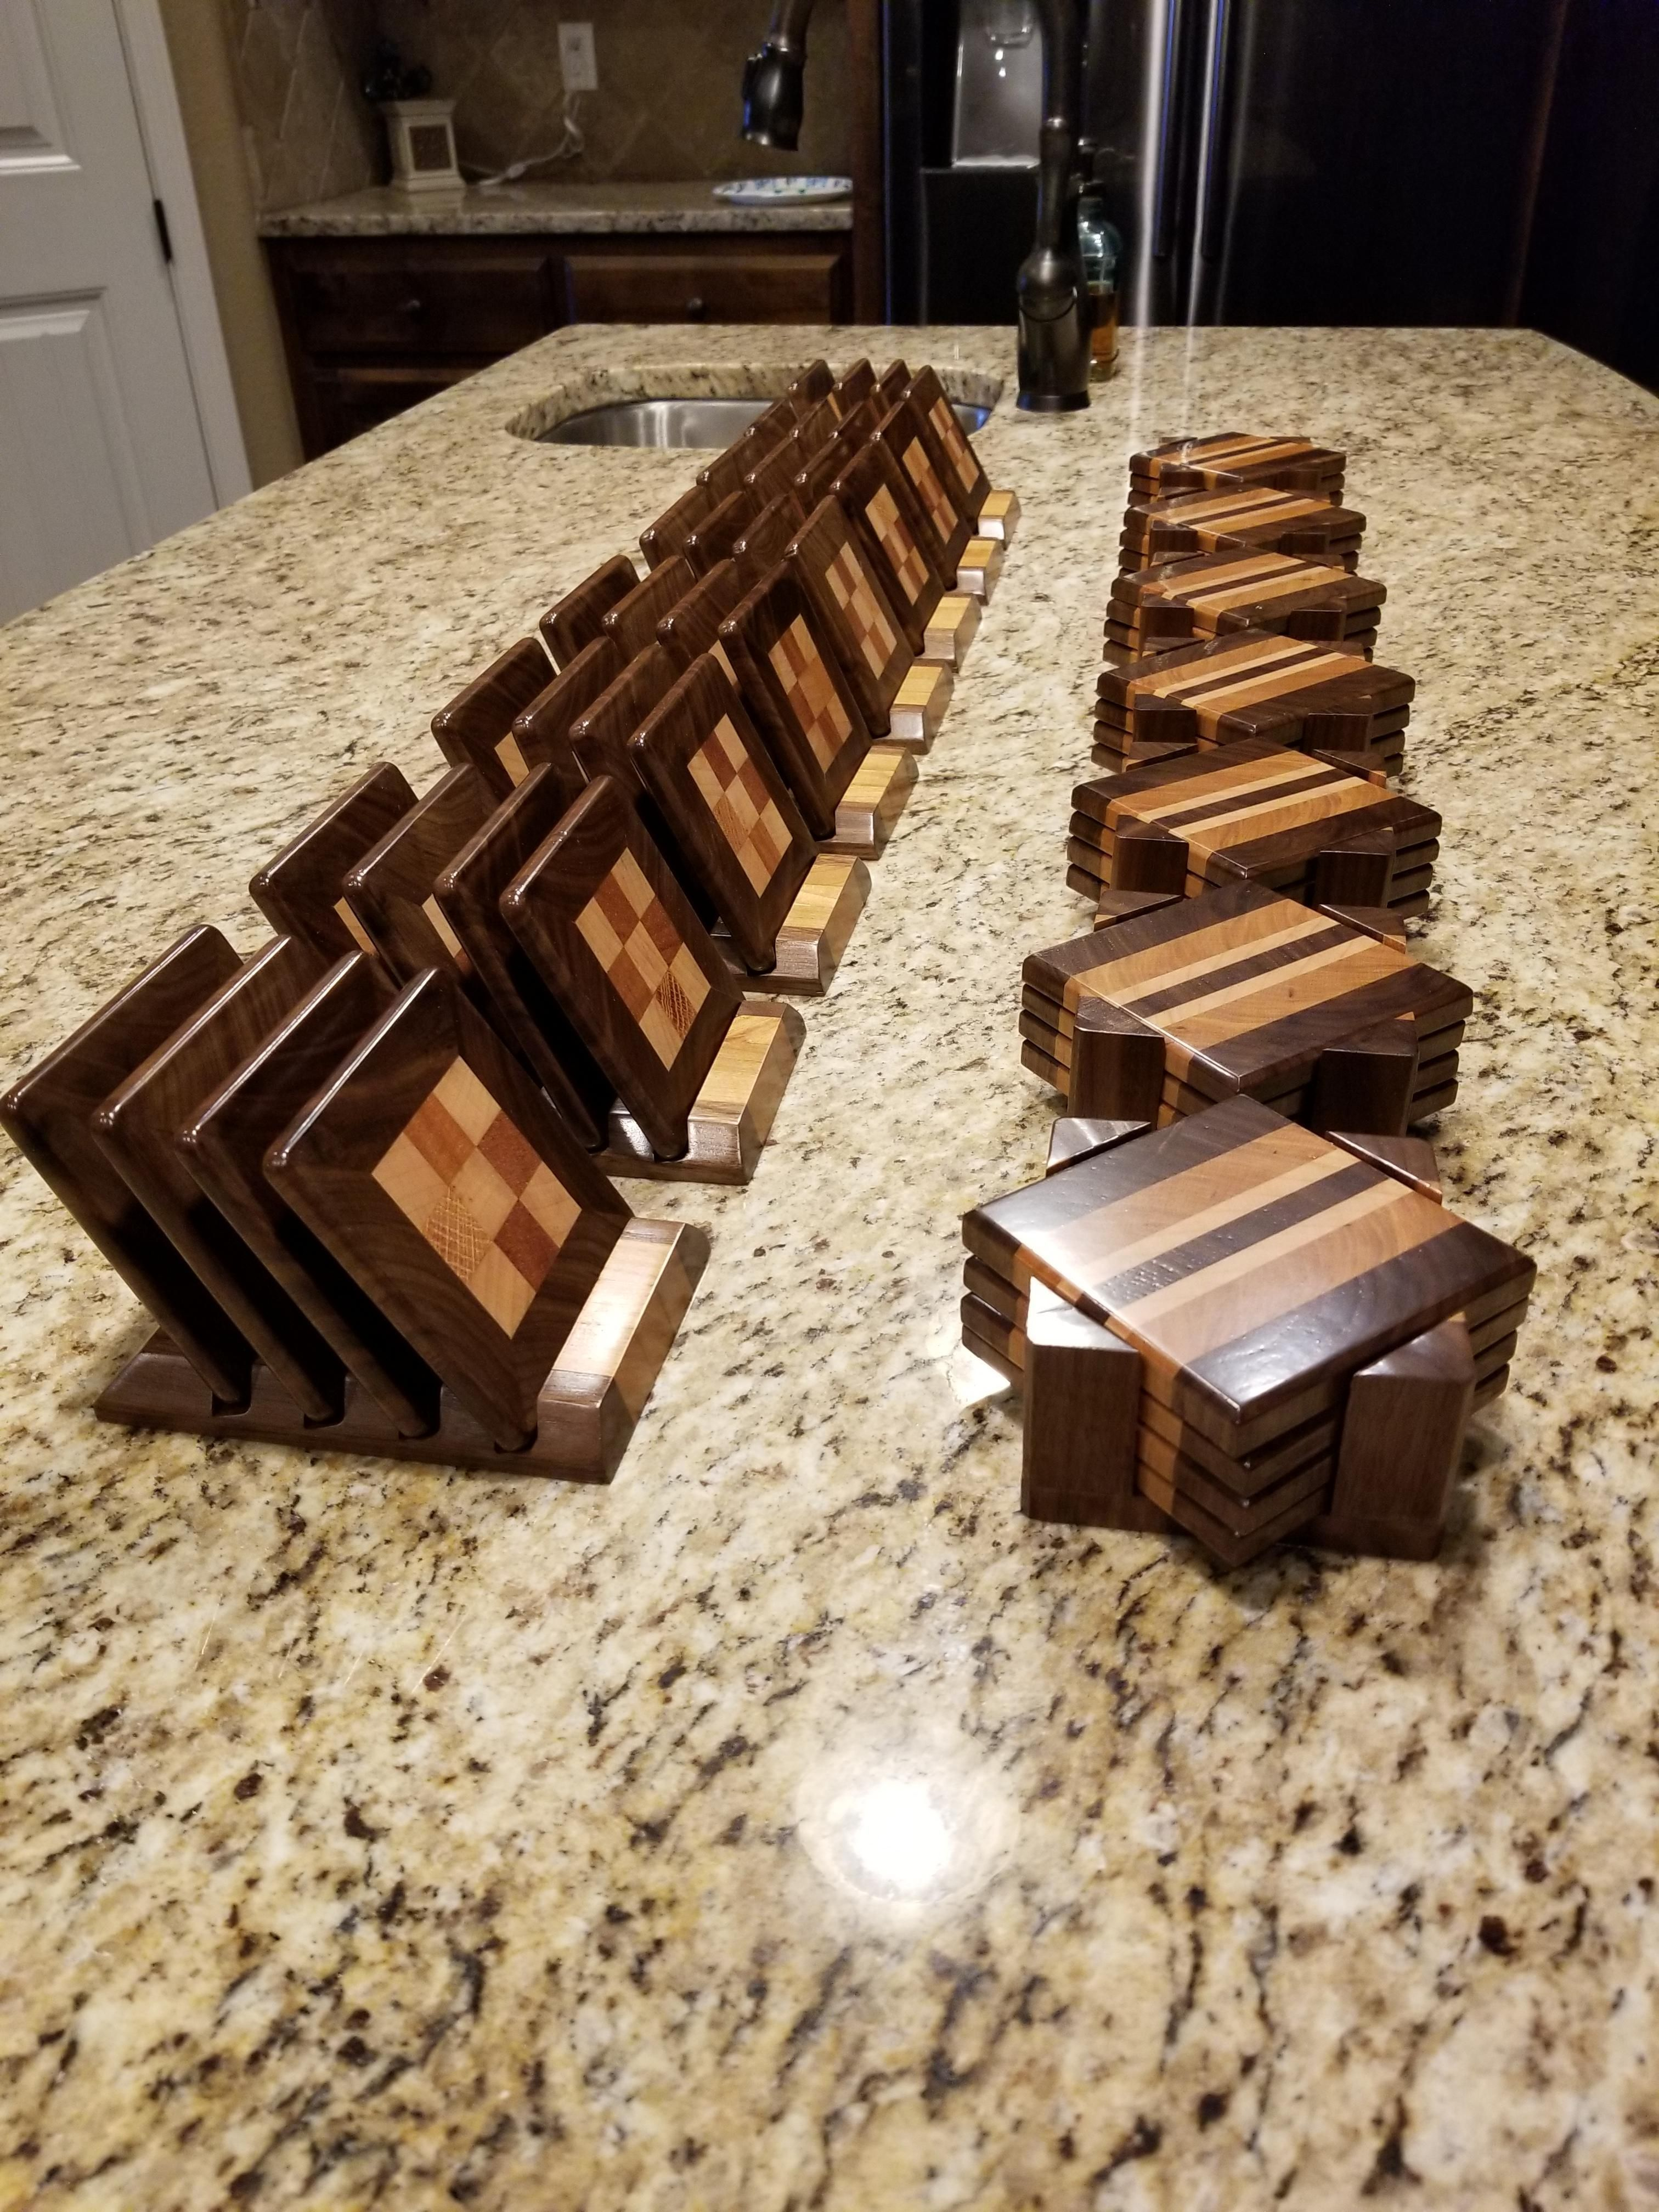 pin by louann androes on gifts woodworking projects plans woodworking easy small wood projects. Black Bedroom Furniture Sets. Home Design Ideas